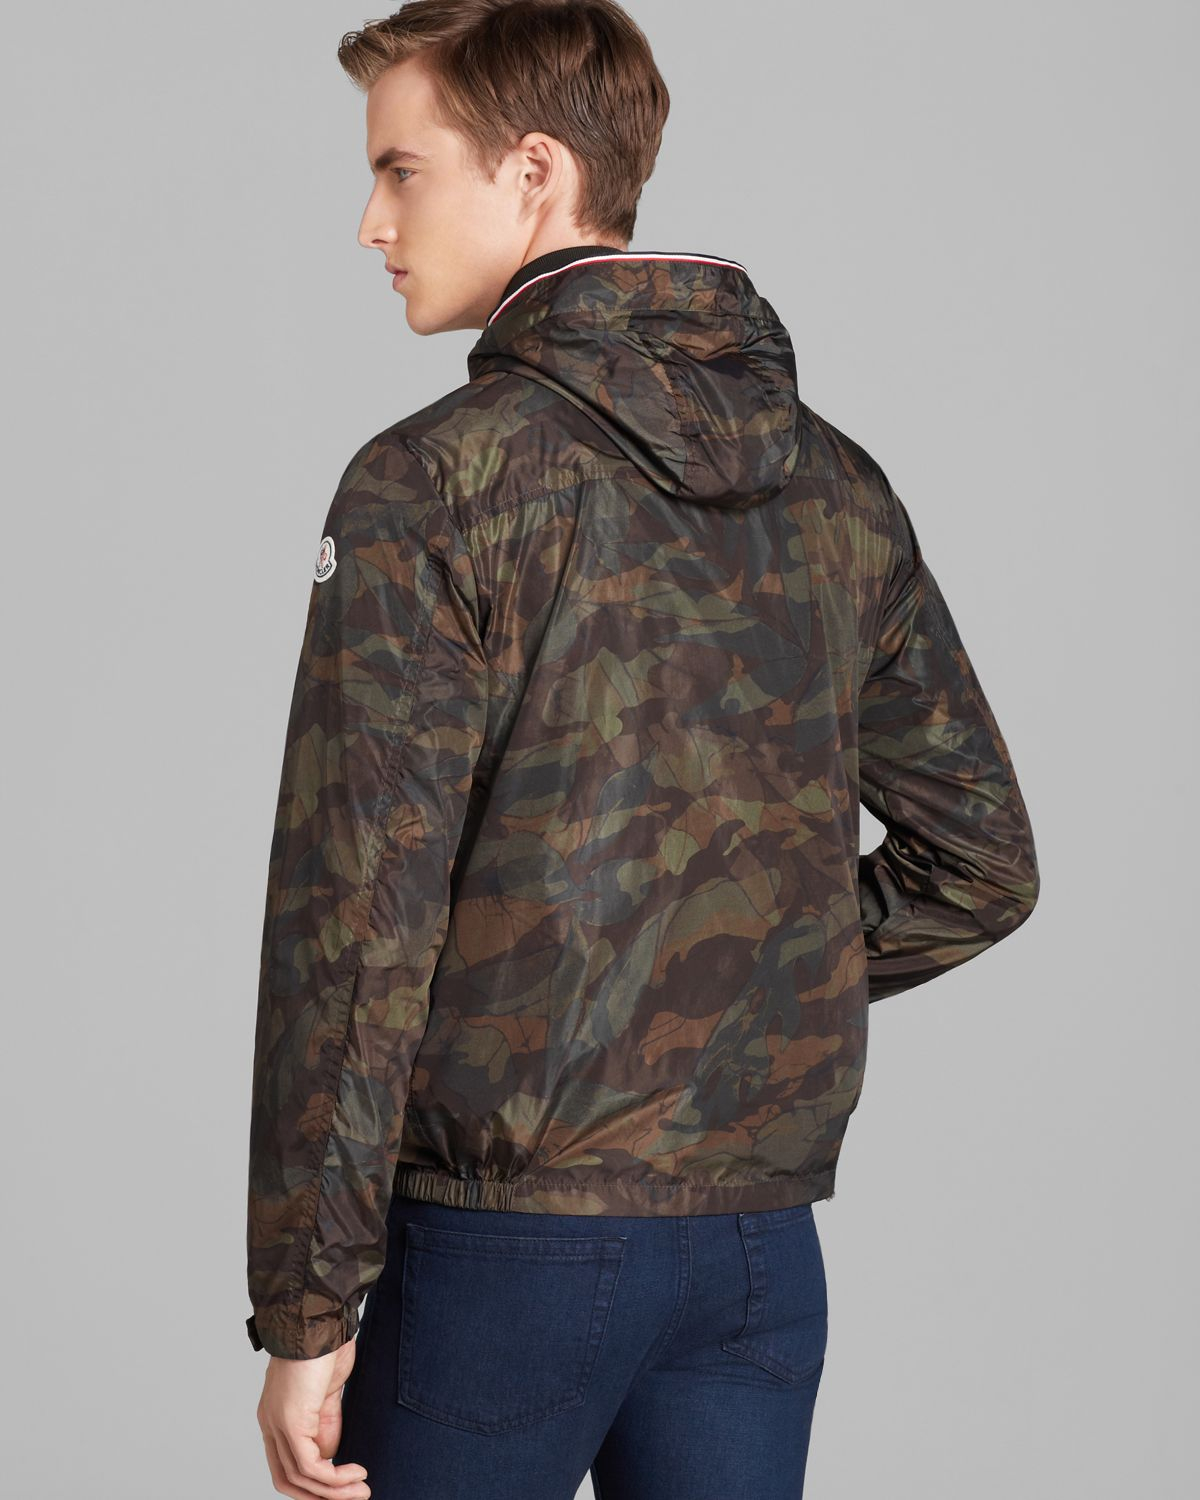 b31ed5a28f675 ... buy lyst moncler nath camo lightweight jacket in green for men 3052b  7b570